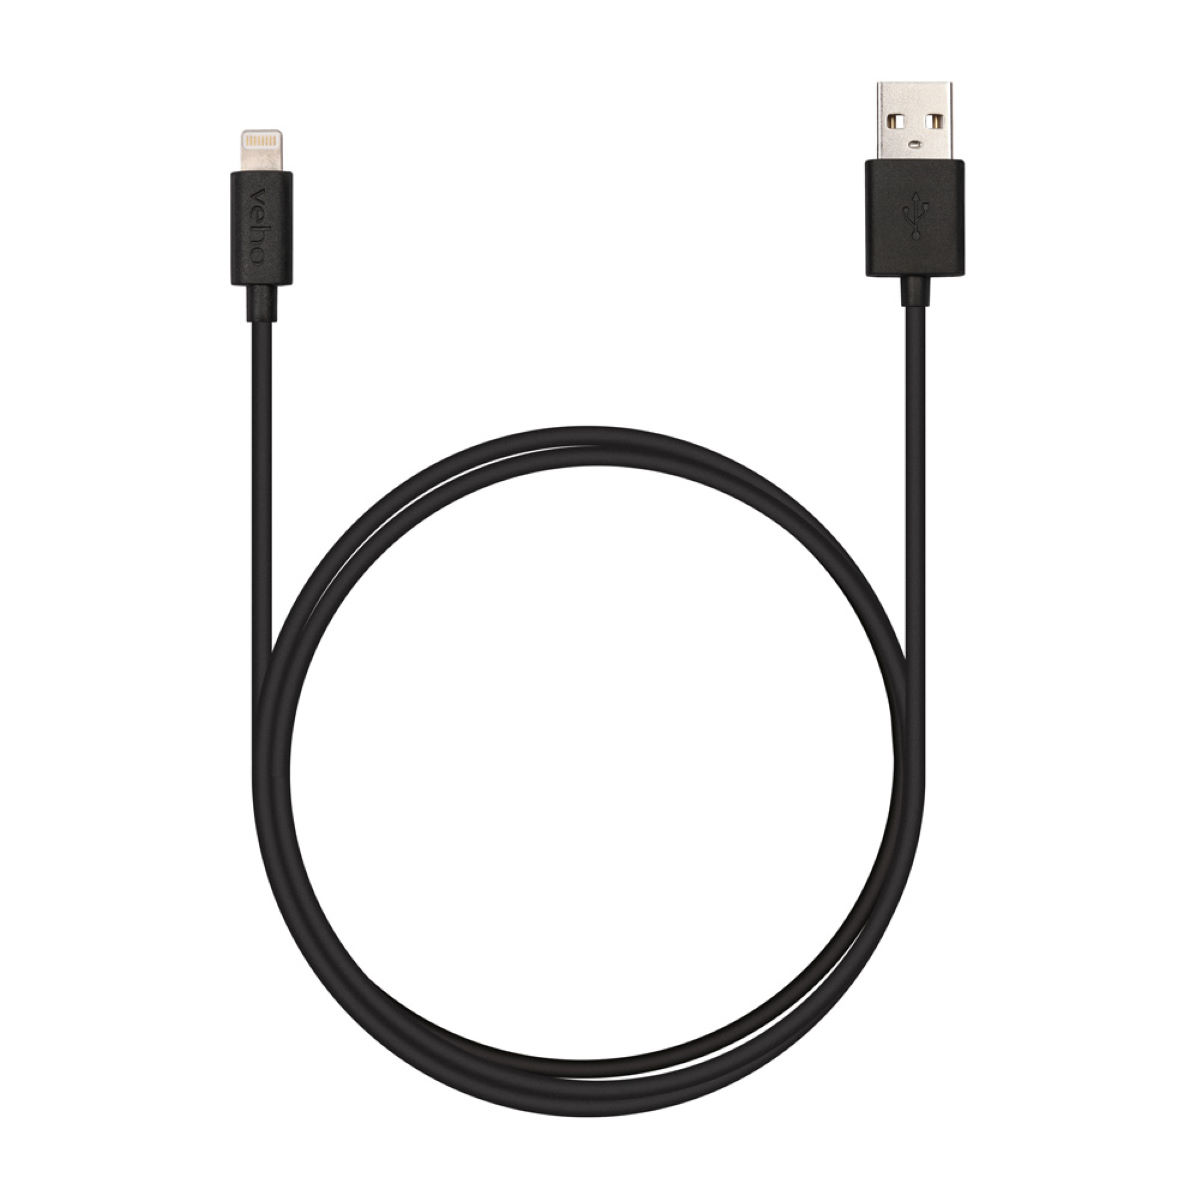 Veho Veho Pebble Apple Lightning Cable (1m)   Power Cables